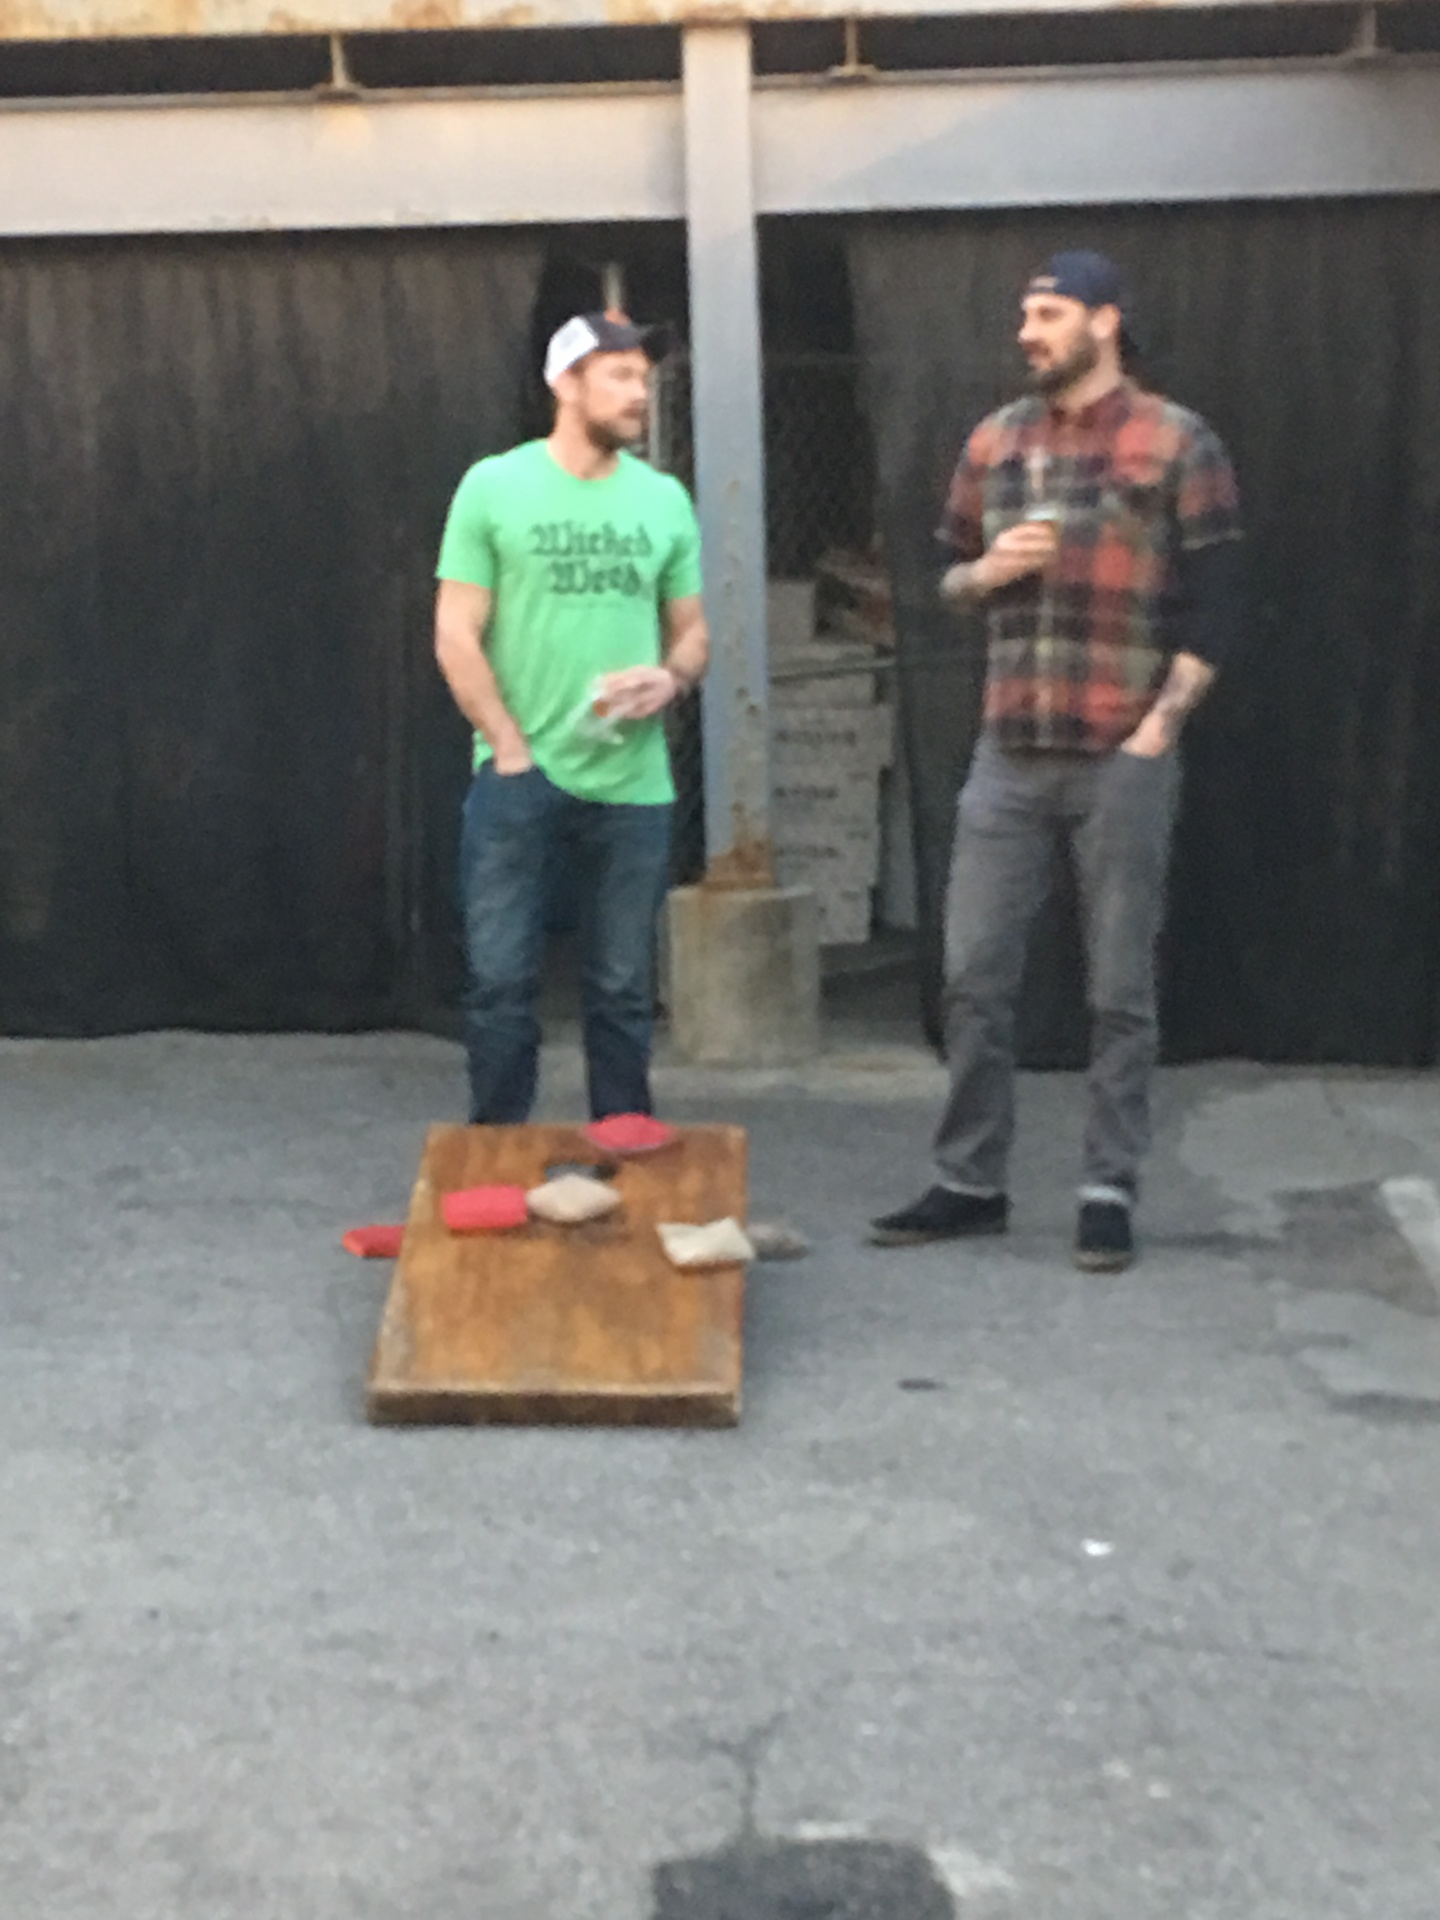 Wicked Weed Corn hole